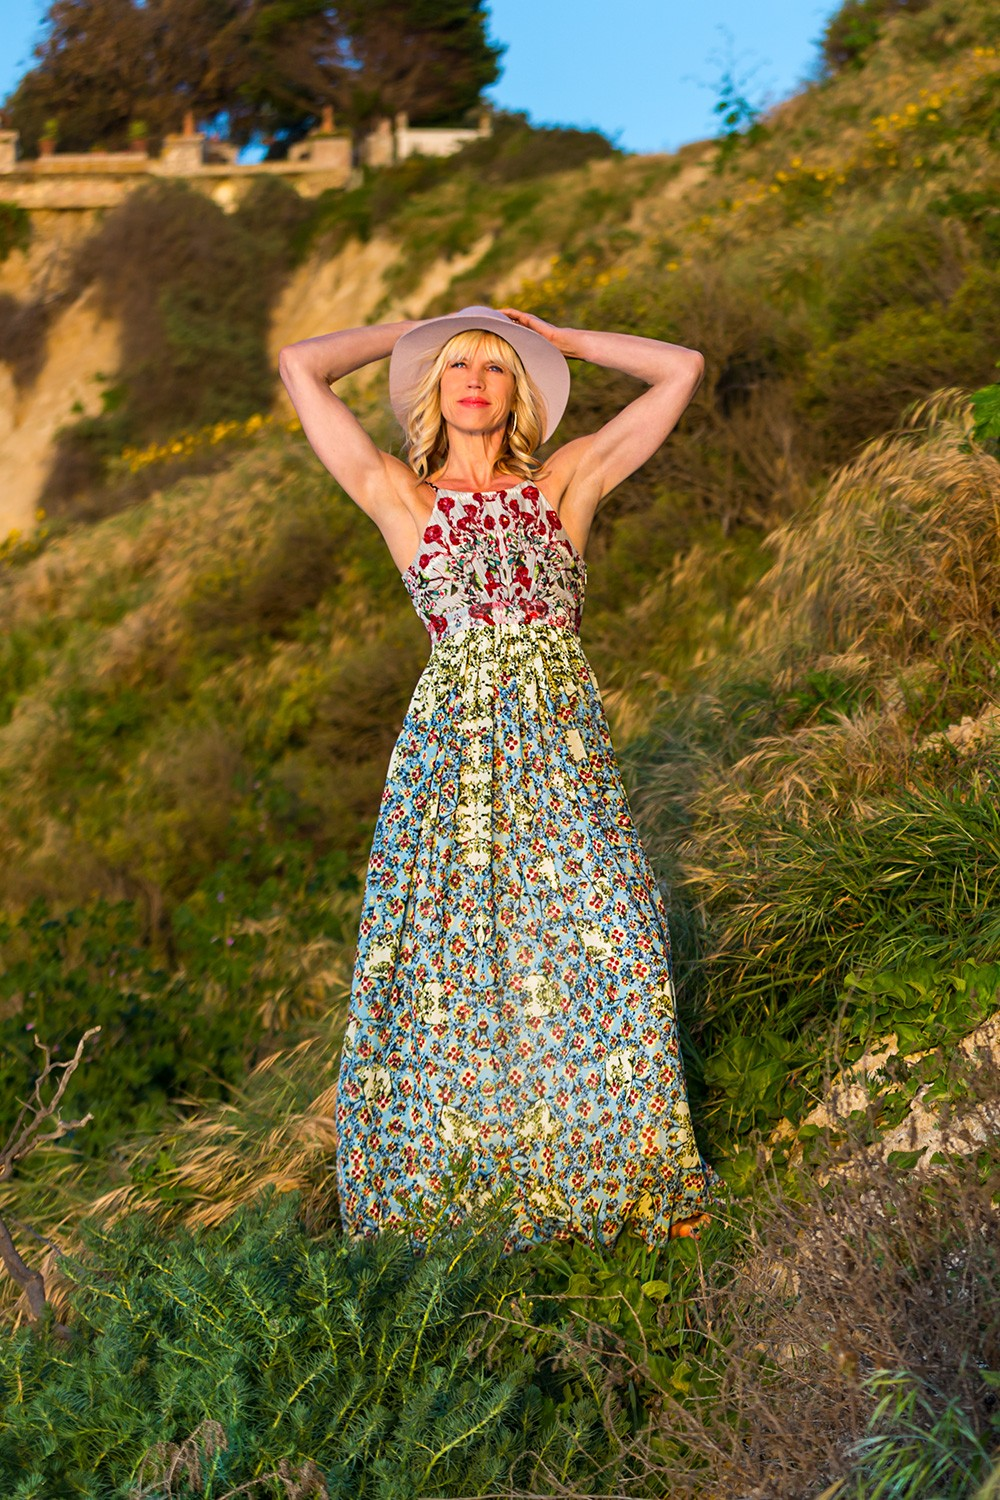 Lovely pose in Anthropologie dress and Michael Stars hat on hillside